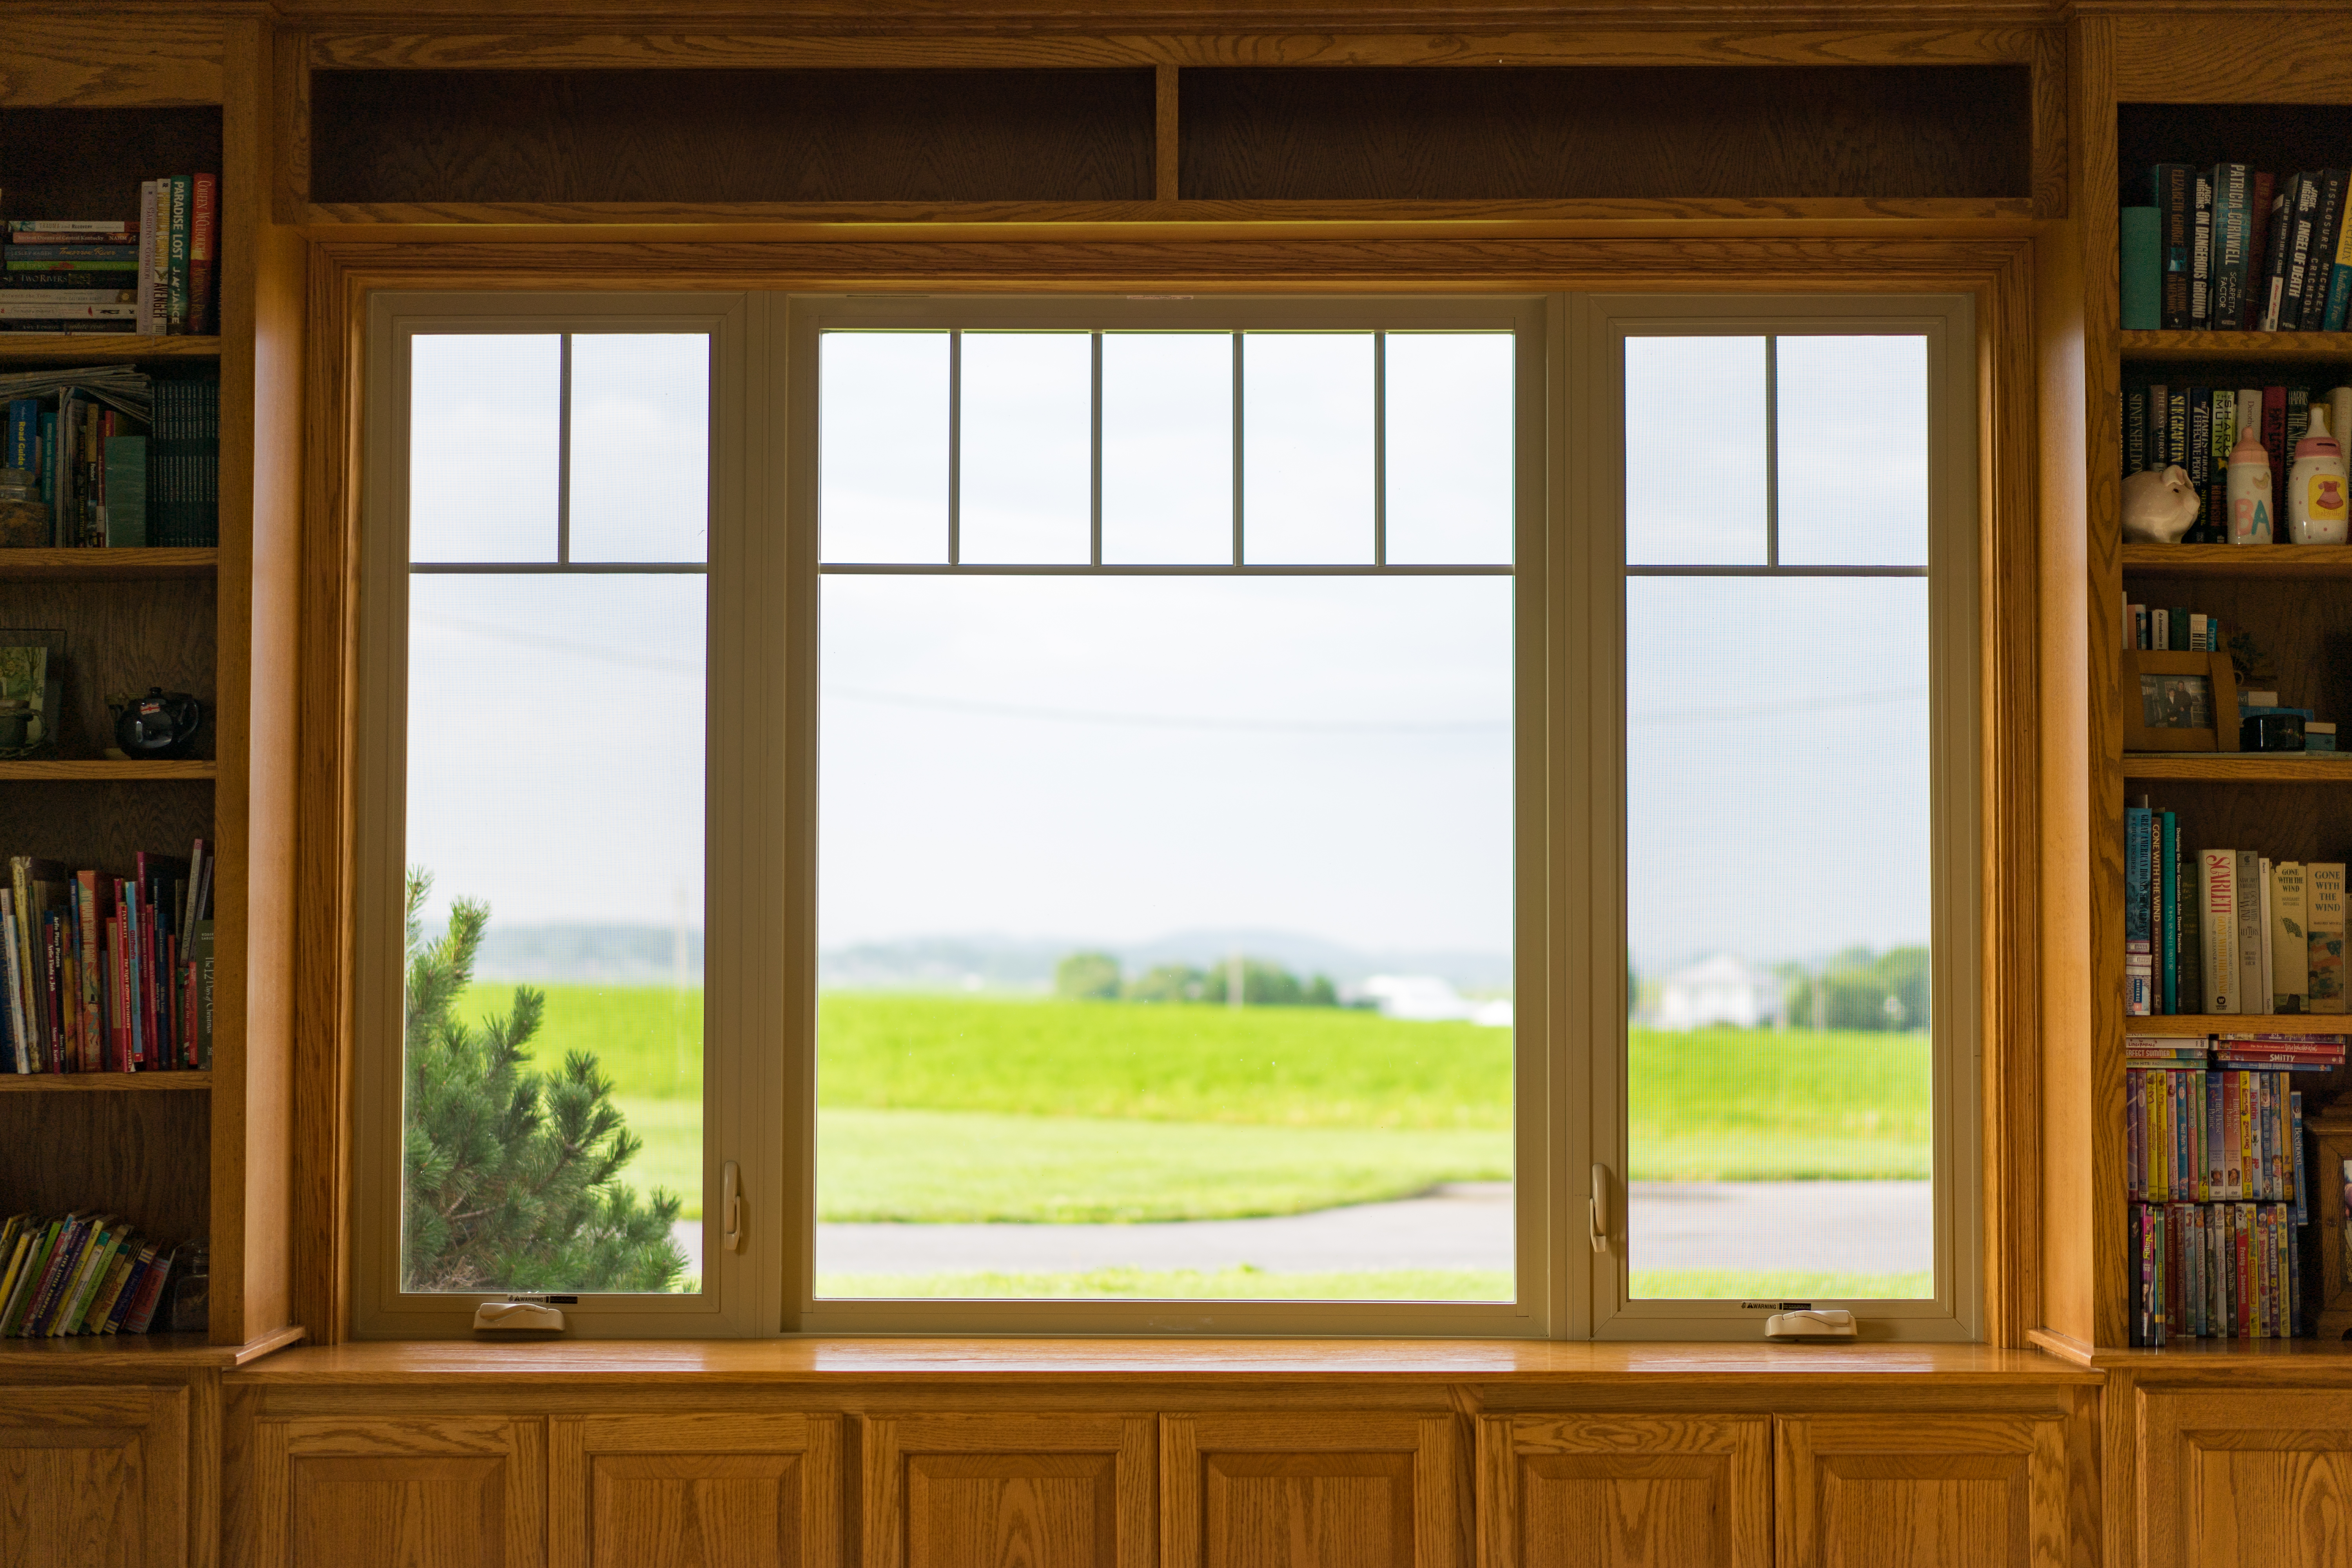 Heartland Home Improvements Offers Innovative Vinyl Windows That Are Low Maintenance